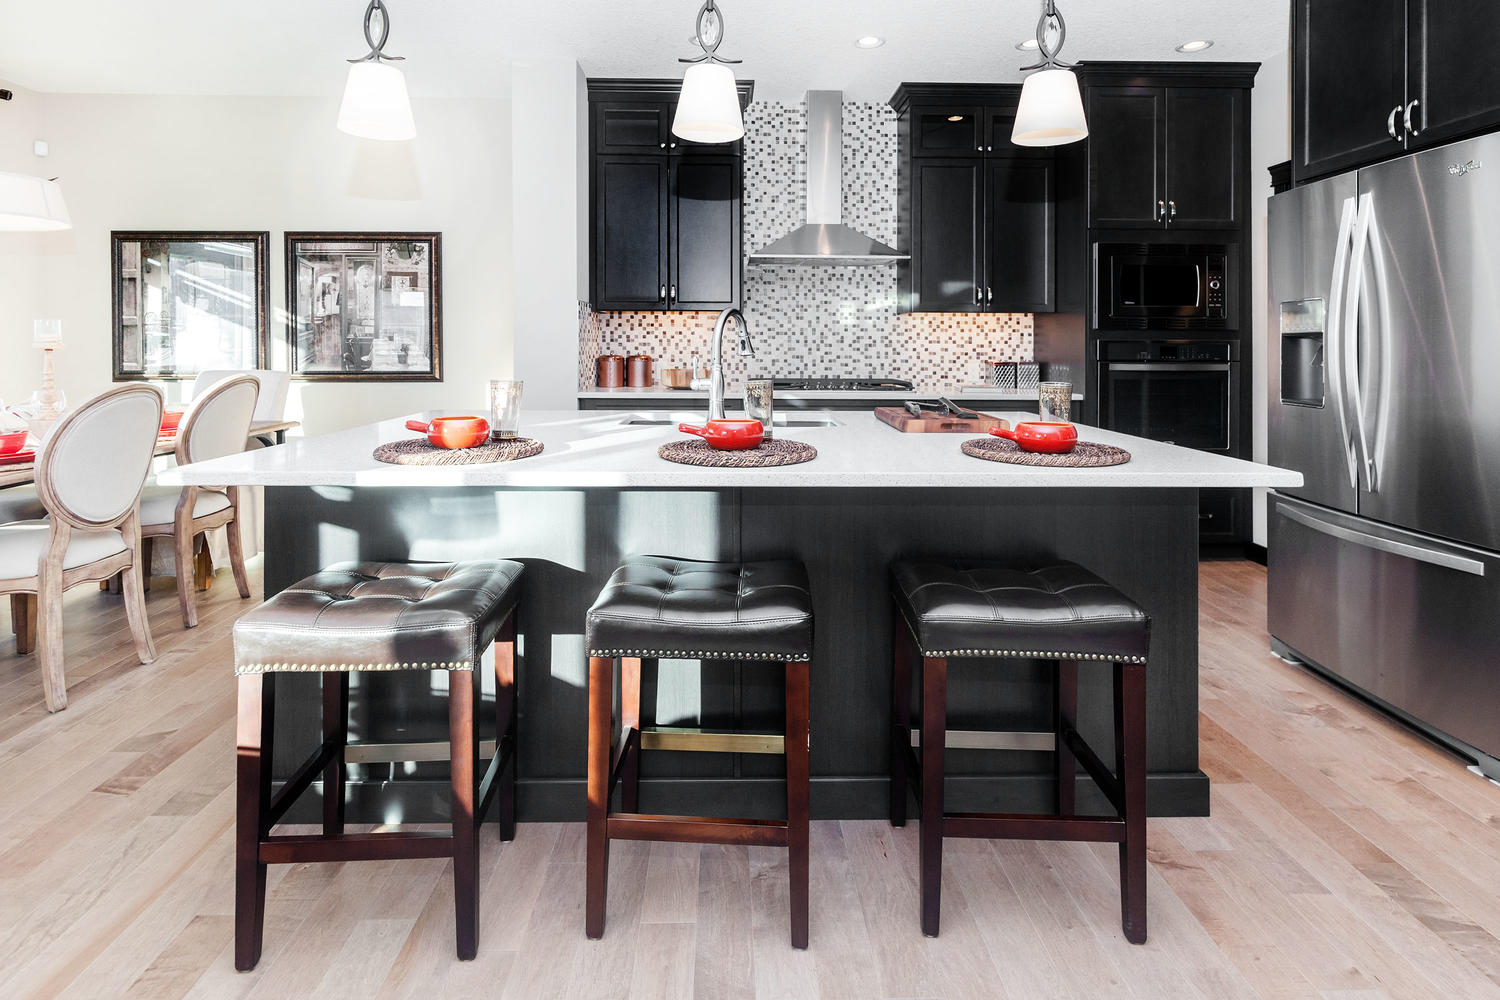 large kitchen island option in the kitchen of a pacesetter front drive home.